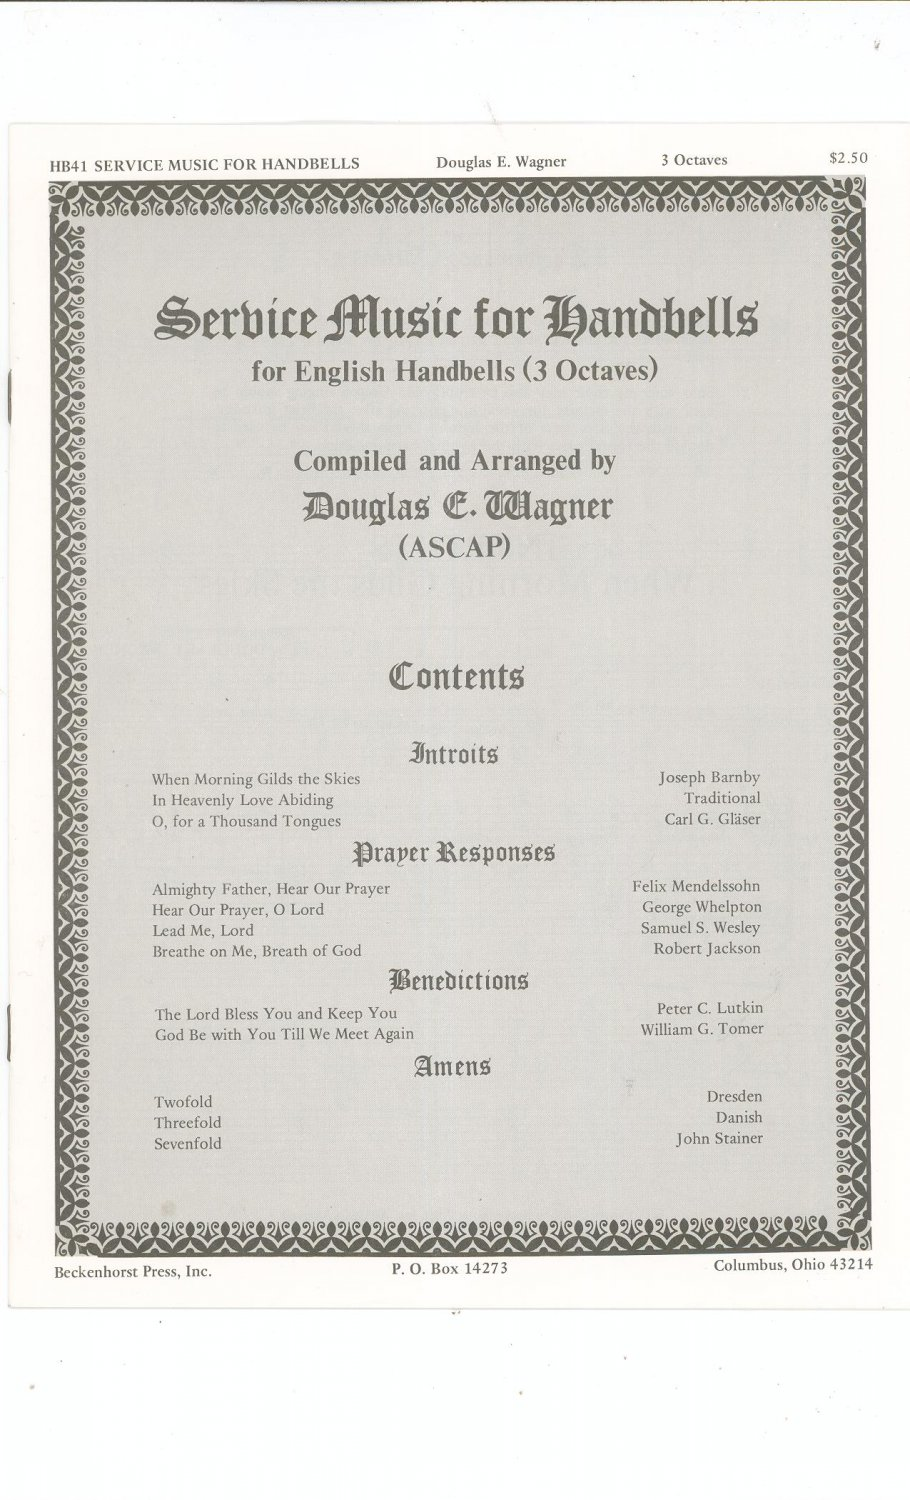 Service Music For Handbells By Douglas E. Wagner HB41